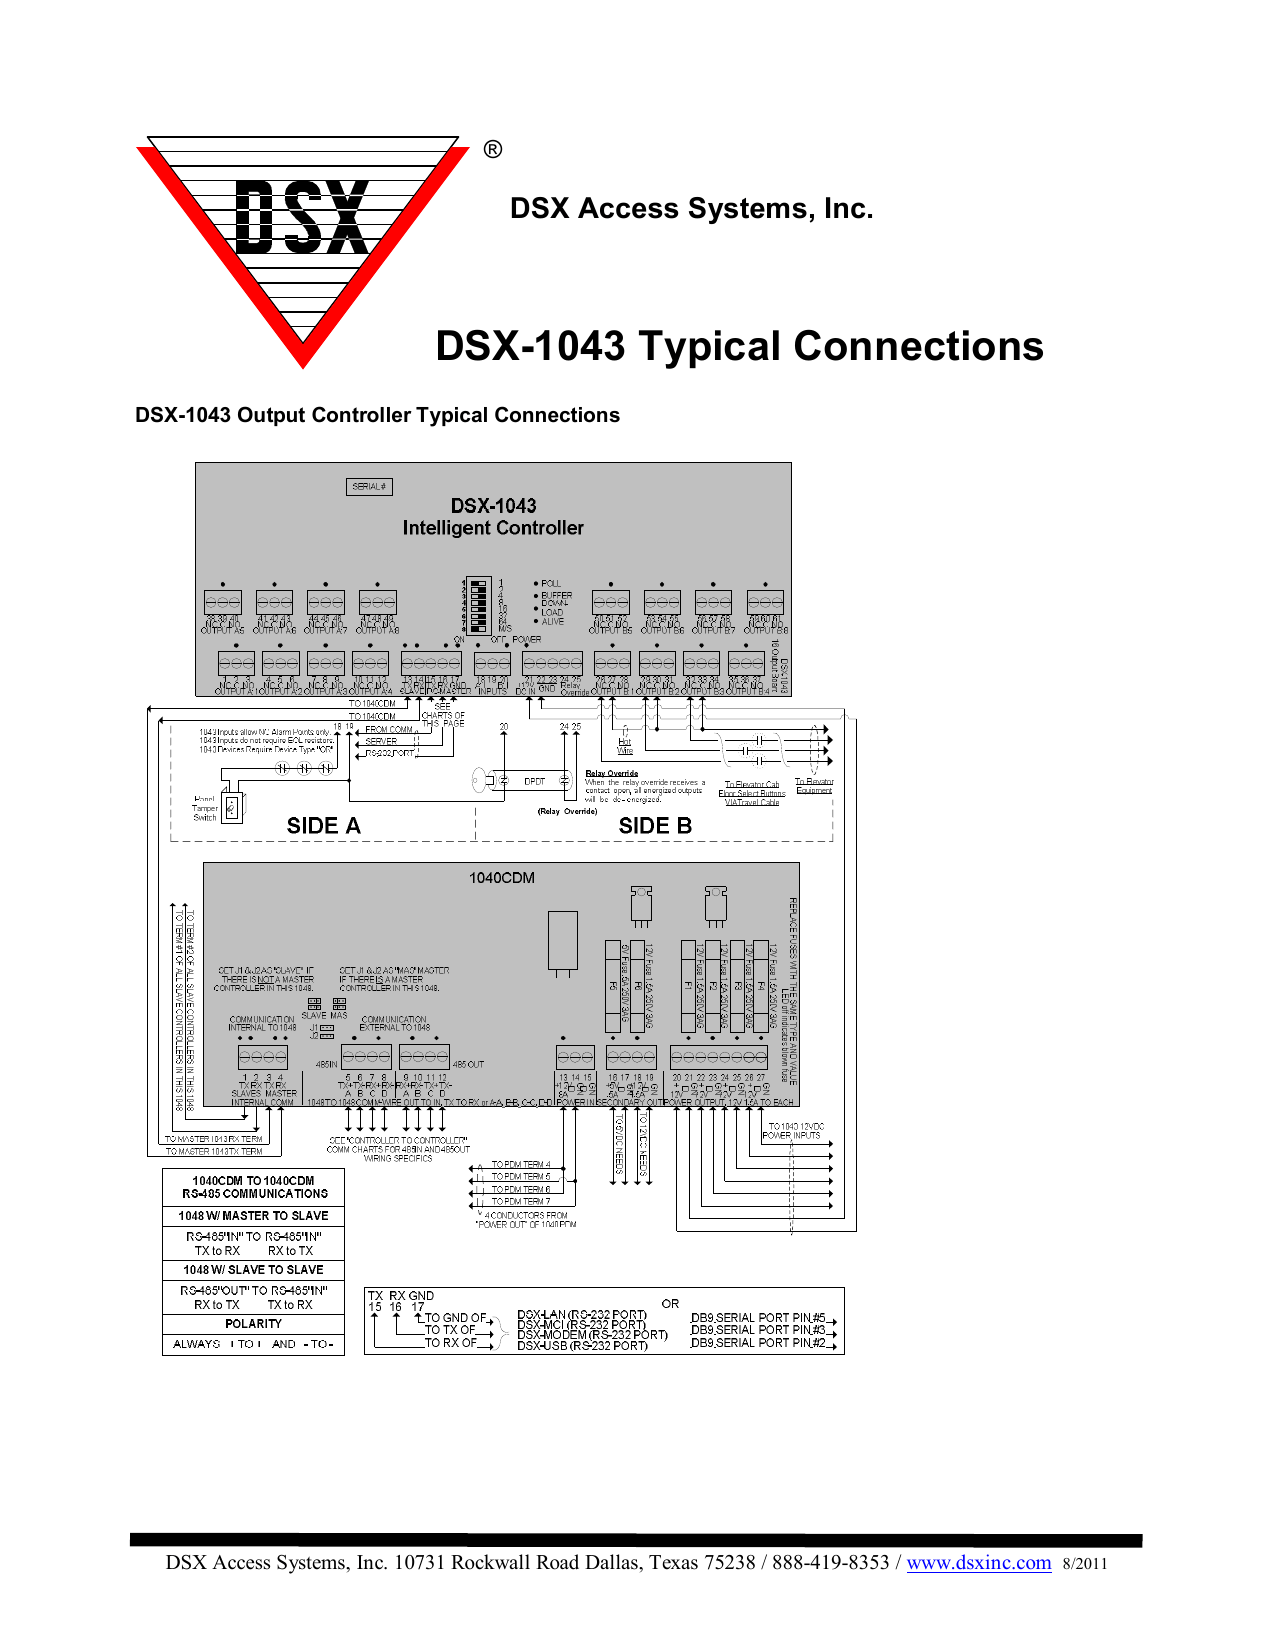 hight resolution of dsx 1048 wiring diagram wiring diagram paperdsx 1048 wiring diagram wiring library dsx 1043 typical connections